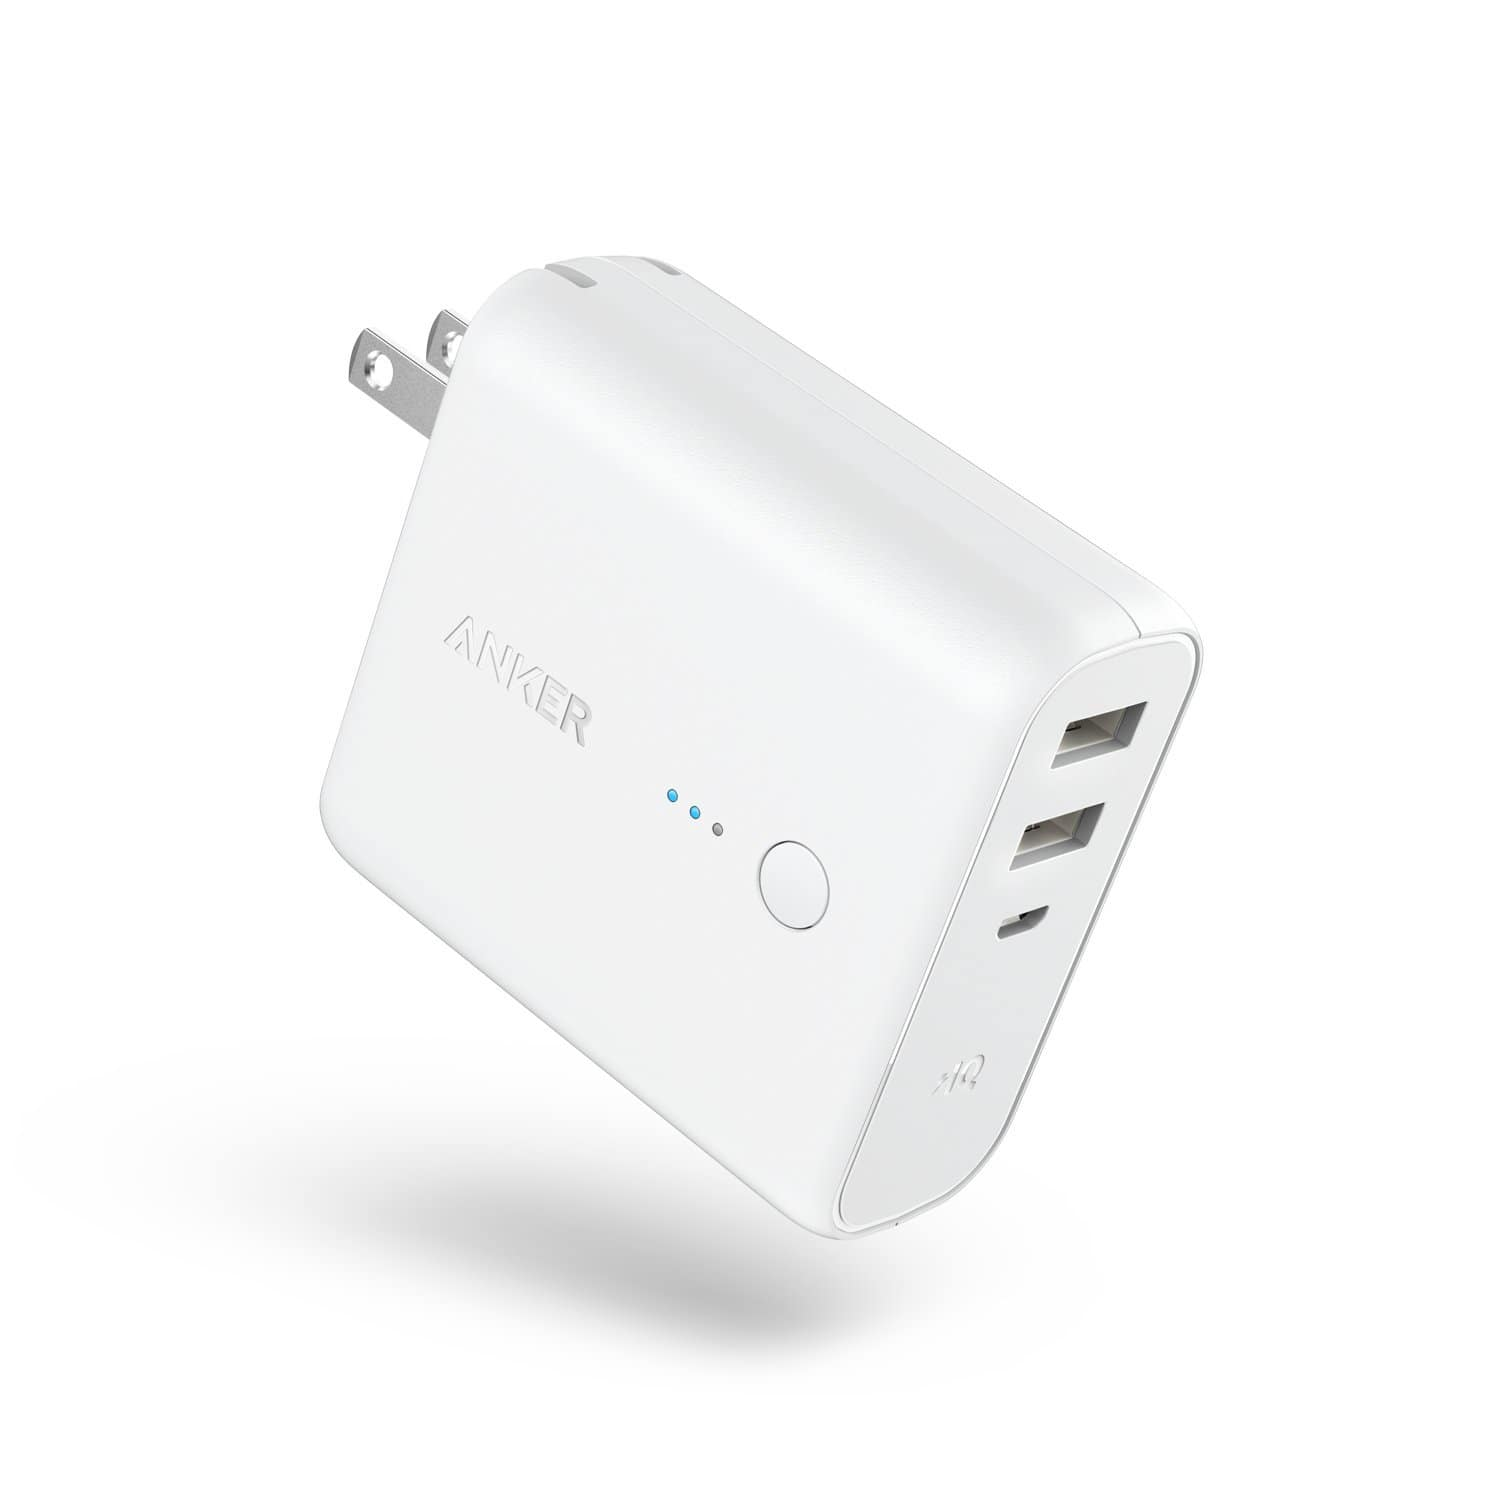 Anker PowerCore Fusion 5000 2-in-1 Portable Charger and Wall Charger $21.99